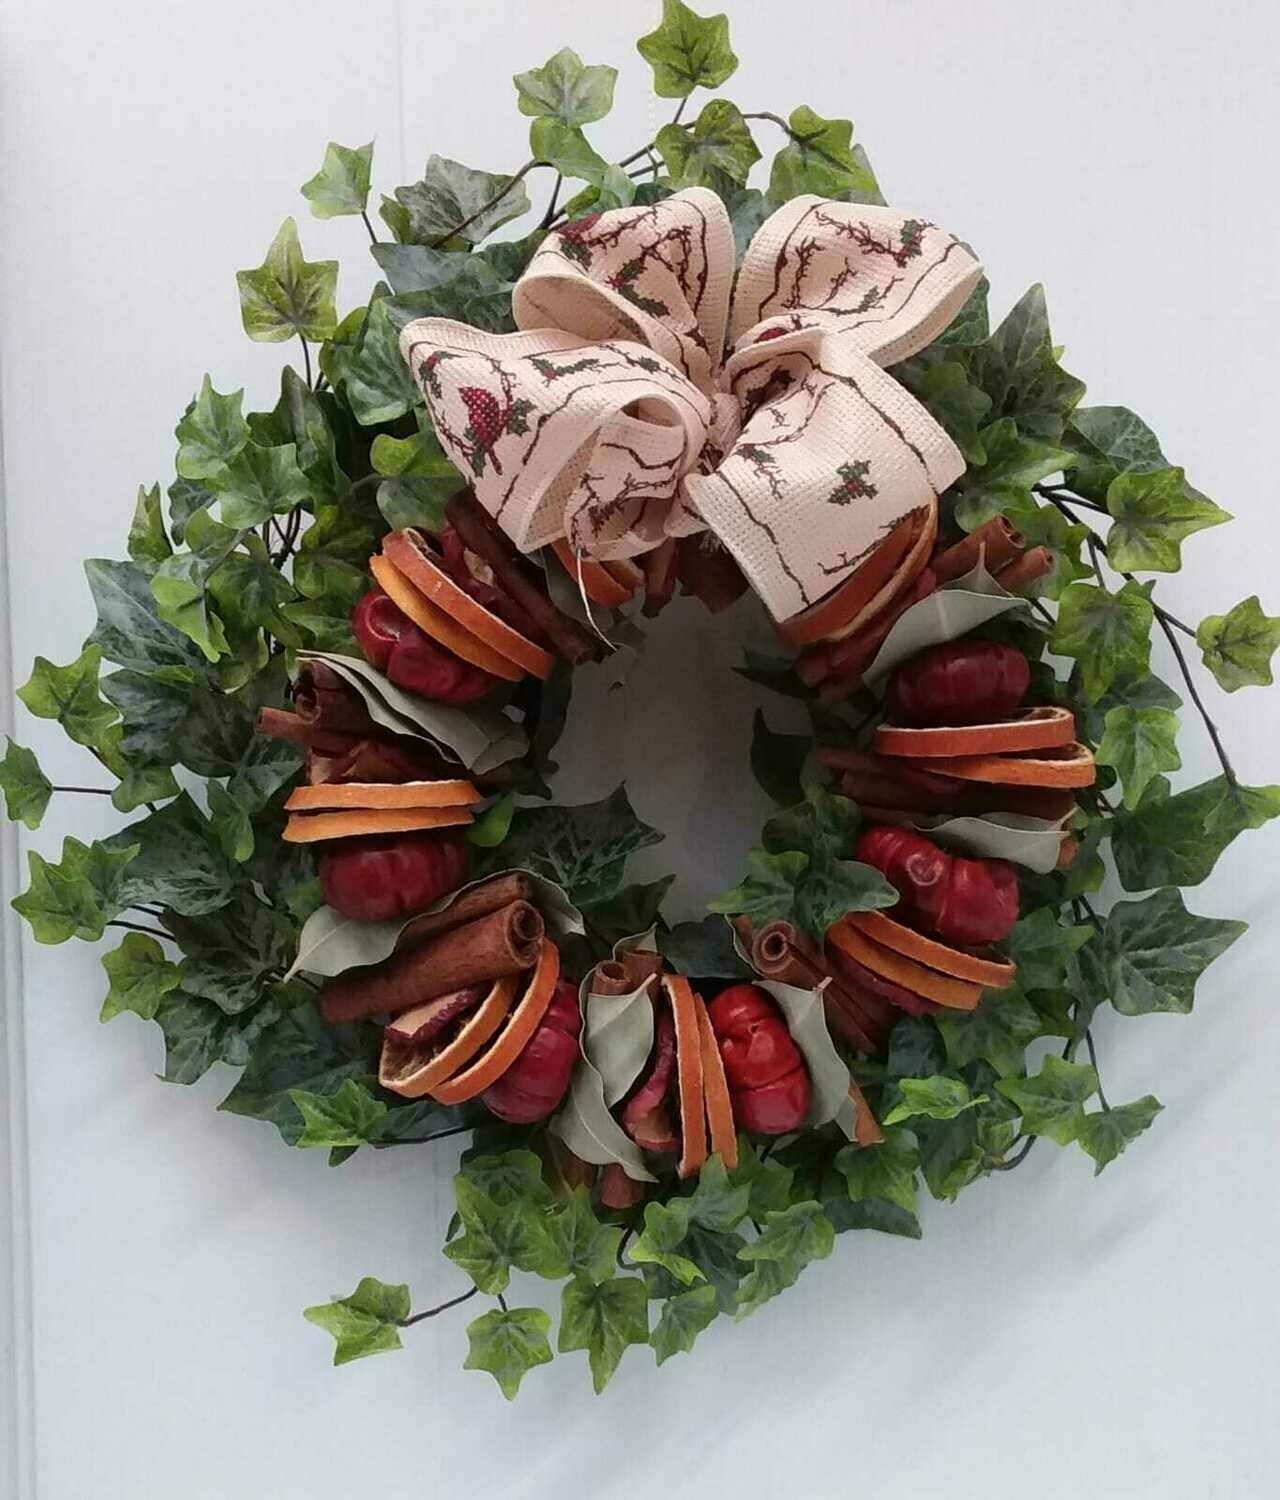 Everlasting ivy wreath with dried fruits 25cm